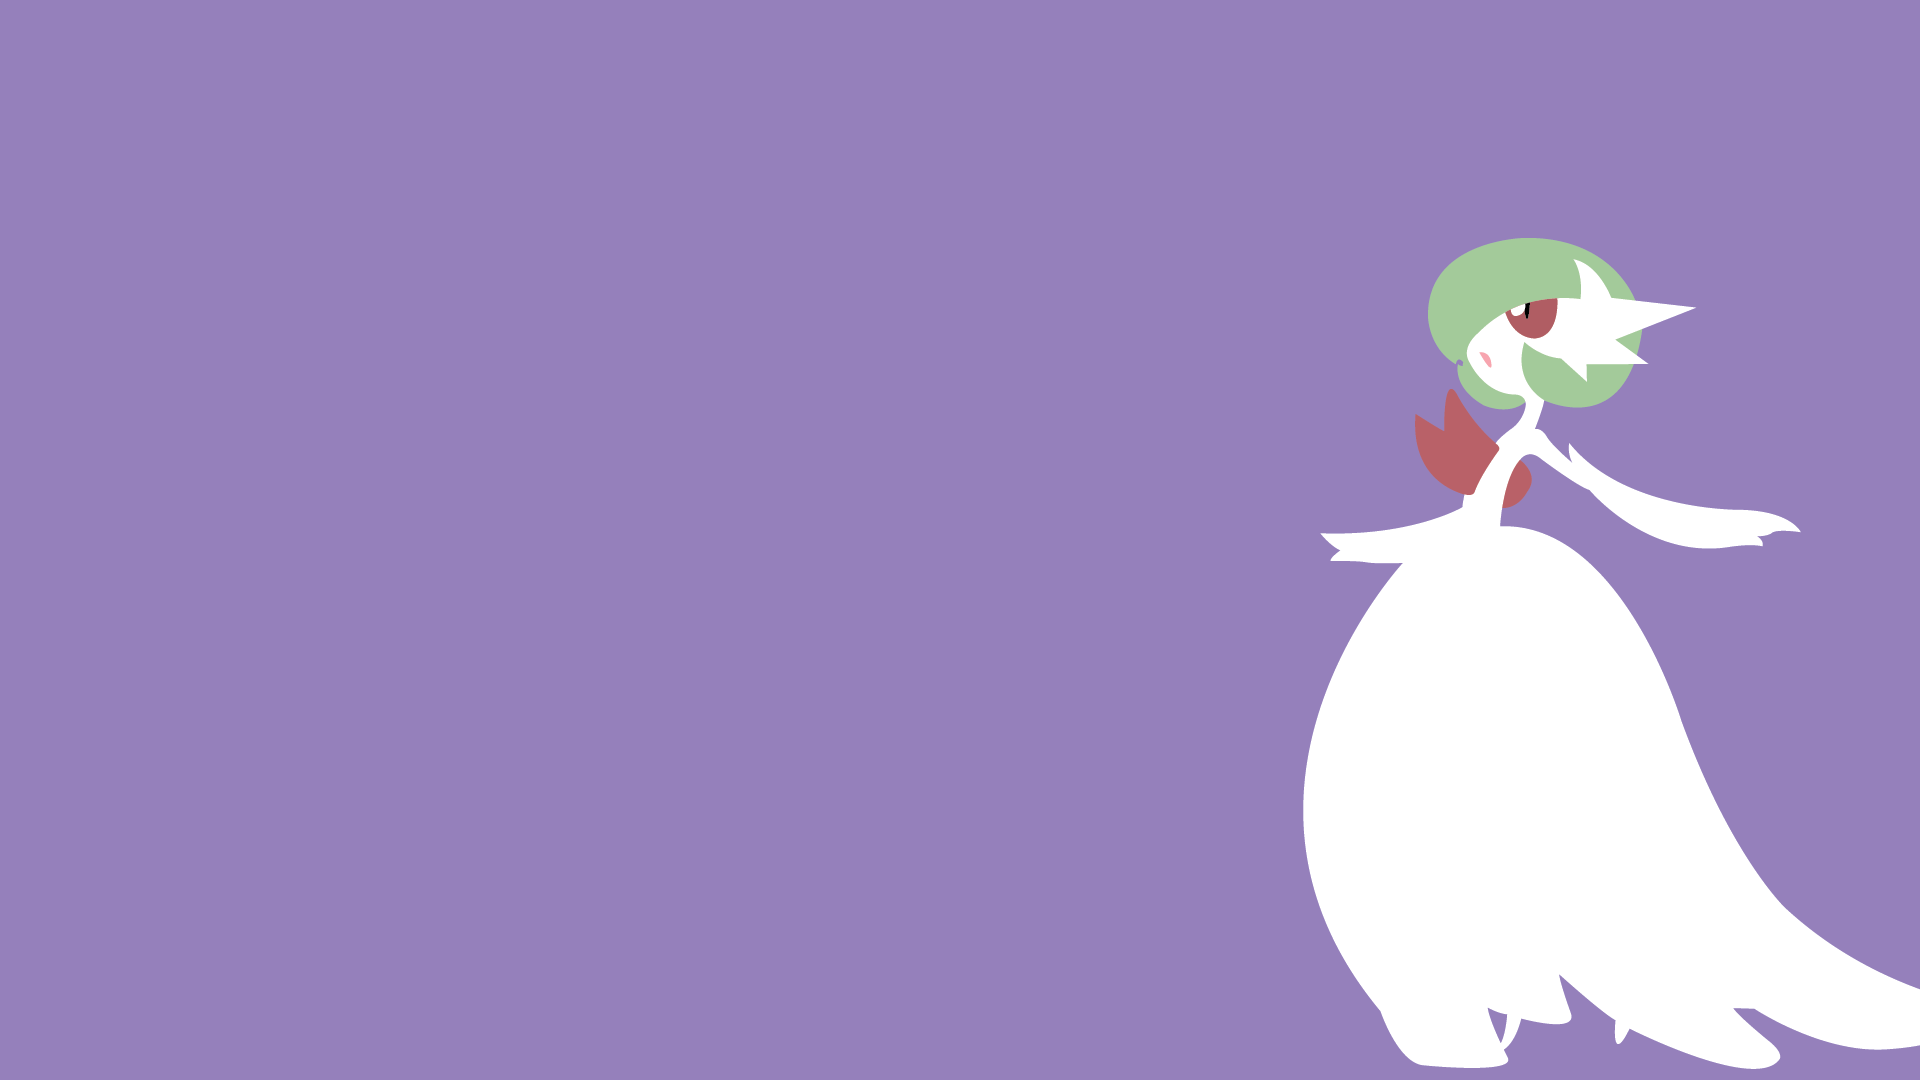 Shiny Mega Gardevoir Wallpaper: Shiny Gardevoir Wallpapers